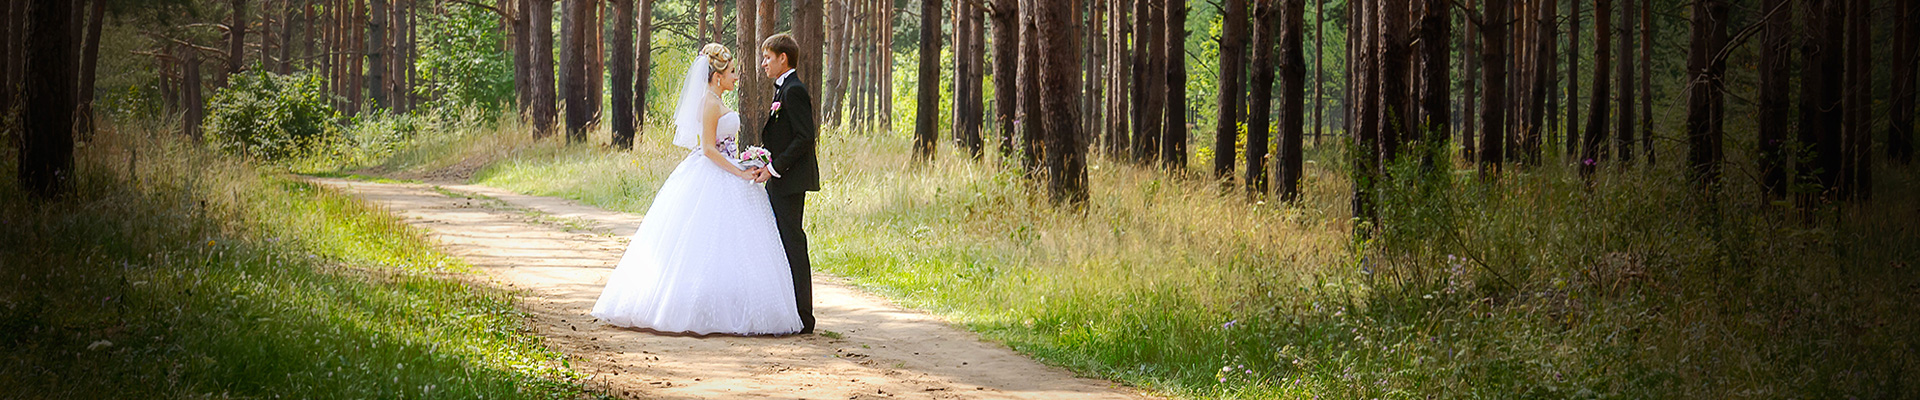 image of newly married couple on a forest path